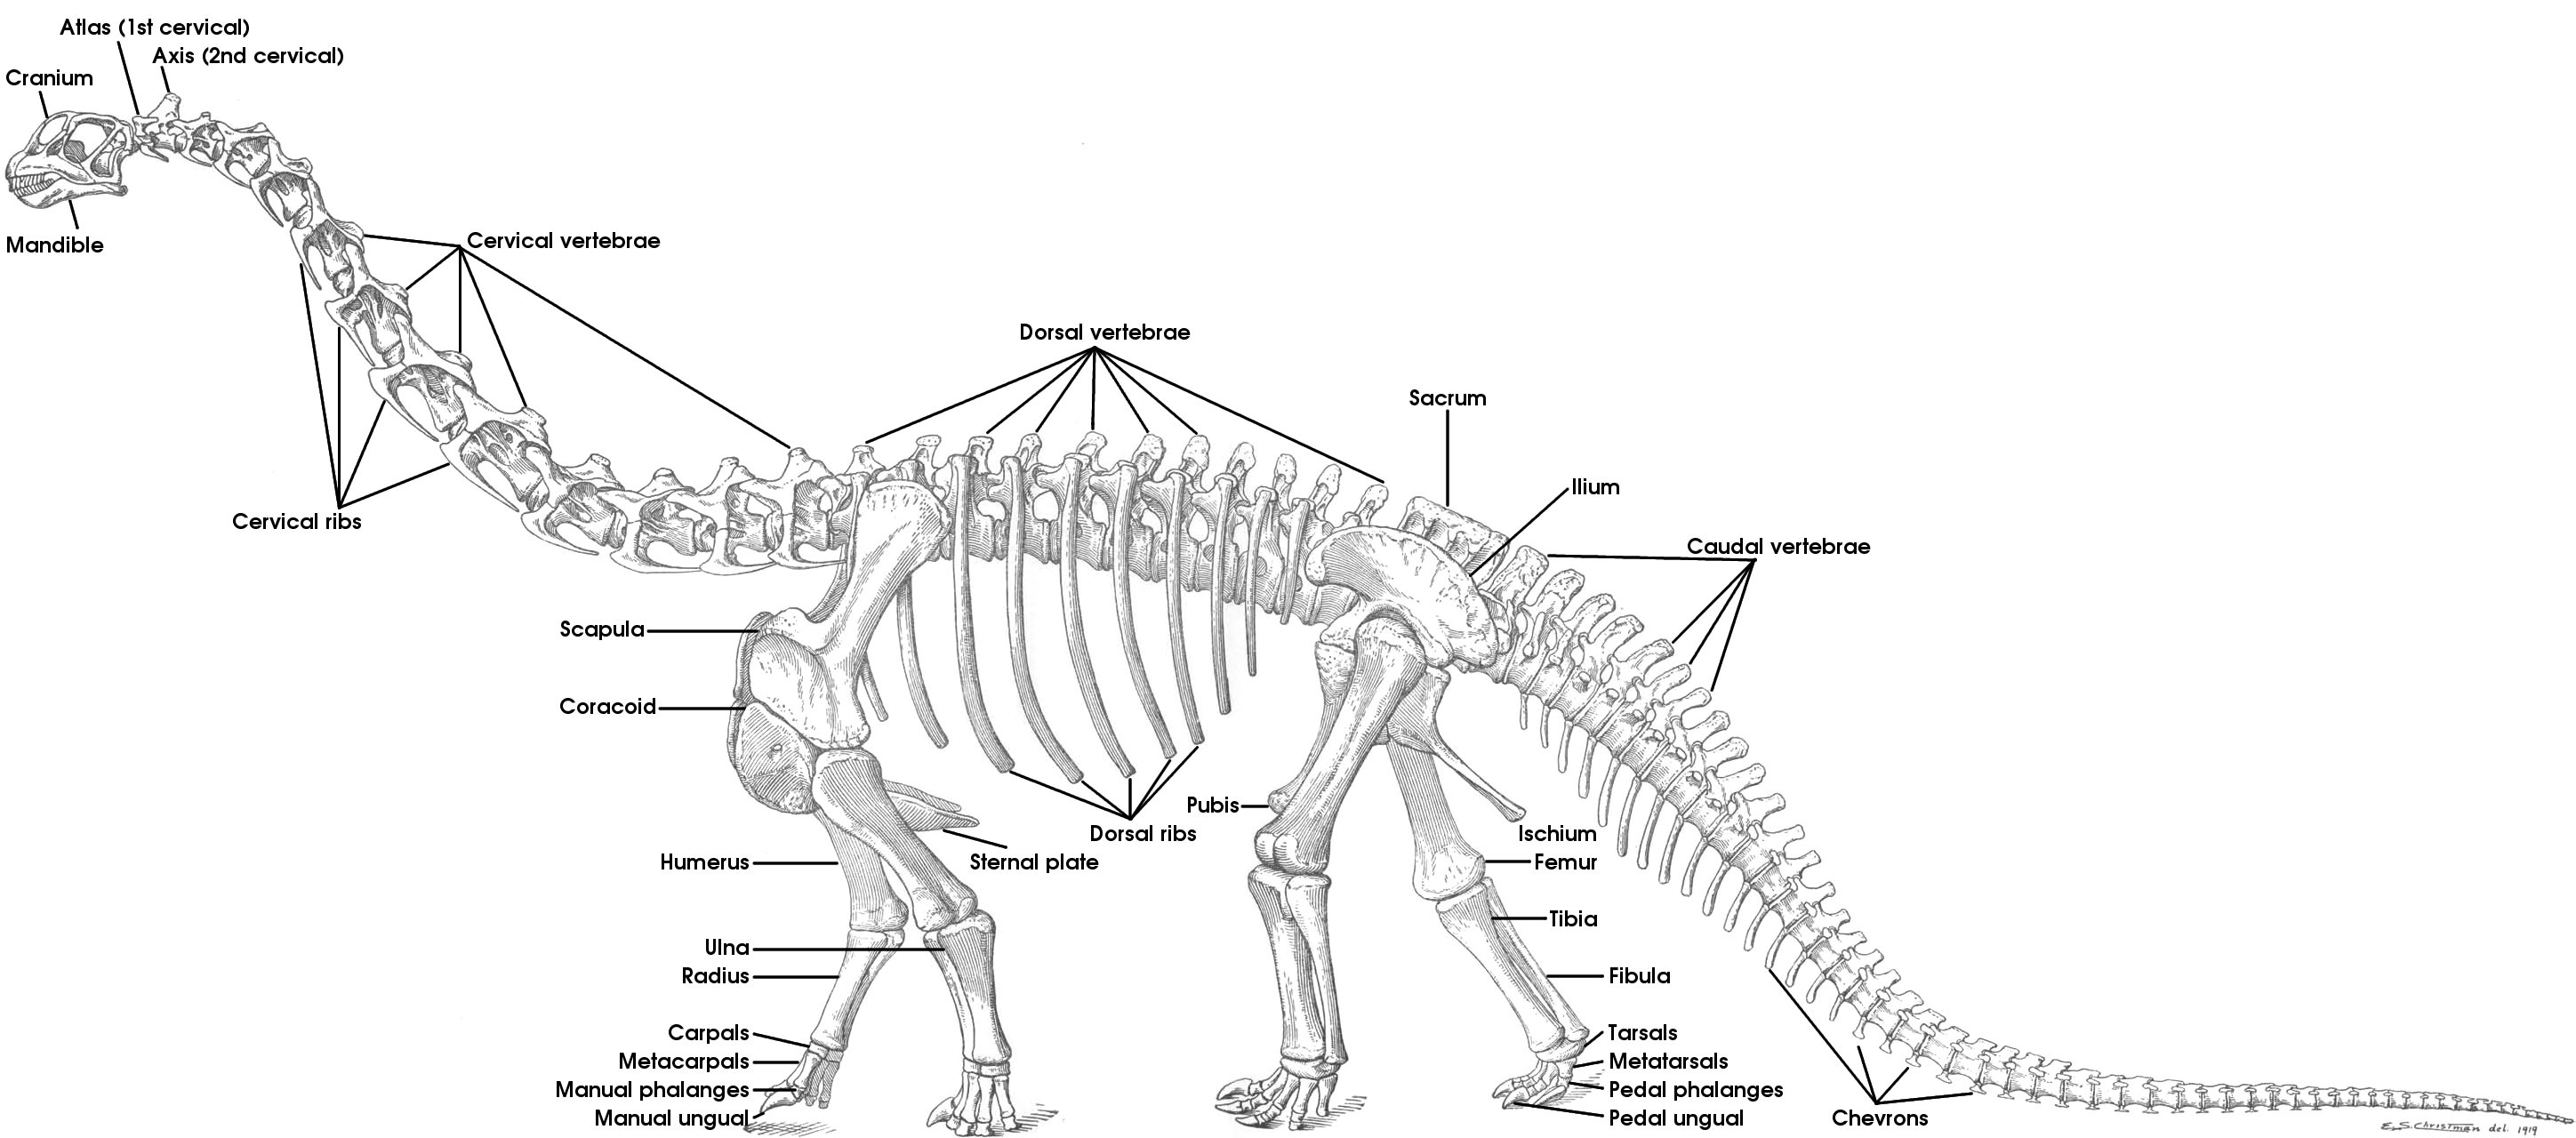 Skeletal Reconstructions